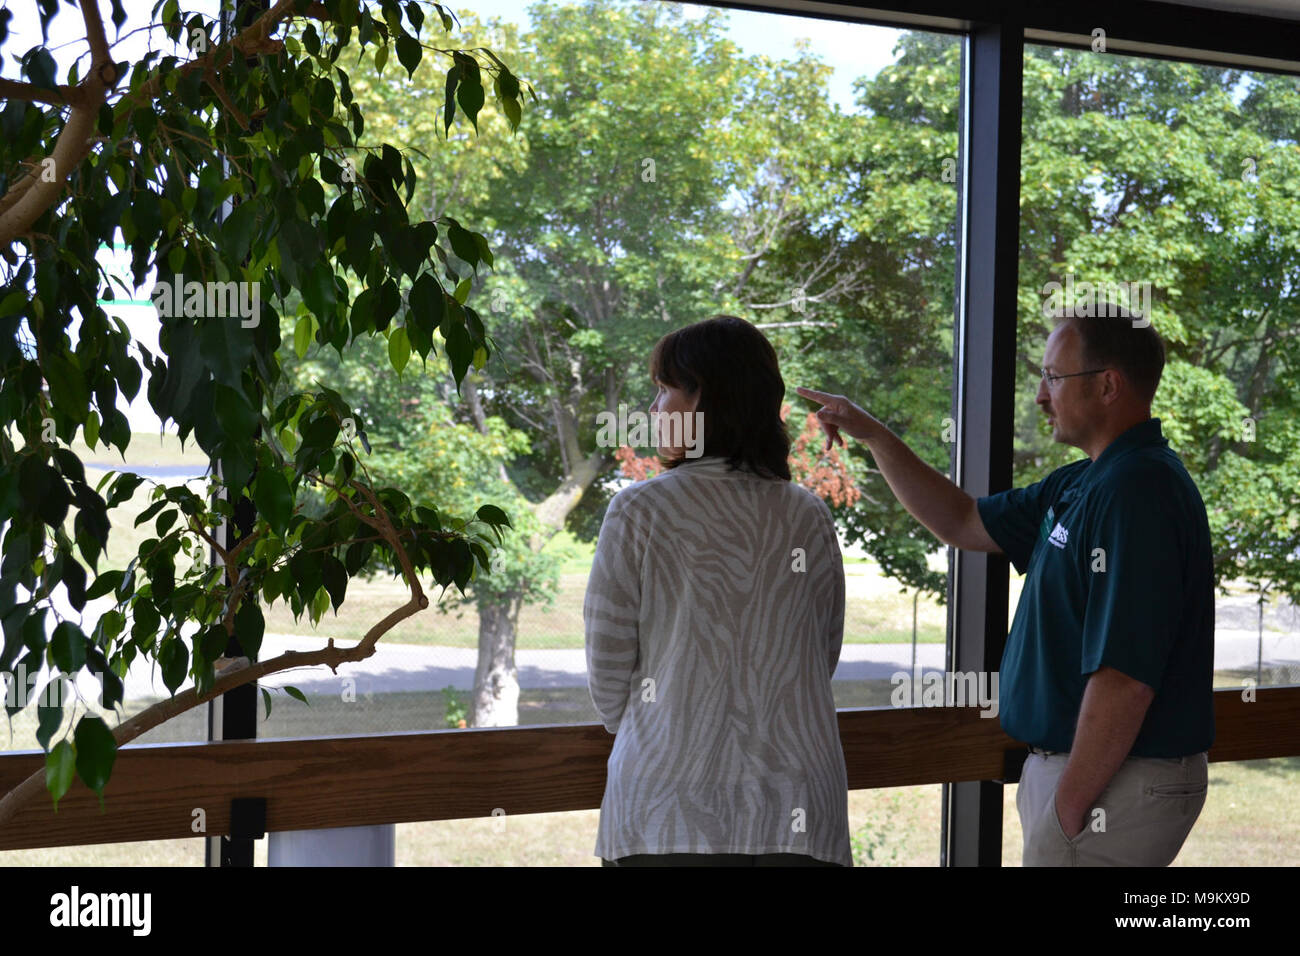 Mark Gaikowski, a research physiologist with the U.S. Geological Survey (USGS), points to the large research ponds at the Upper Midwest Environmental Sciences Center (UMESC). Rep. Betty McCollum (D-Minn.) looks on. Photo by Garrett Peterson/USFWS. - Stock Image